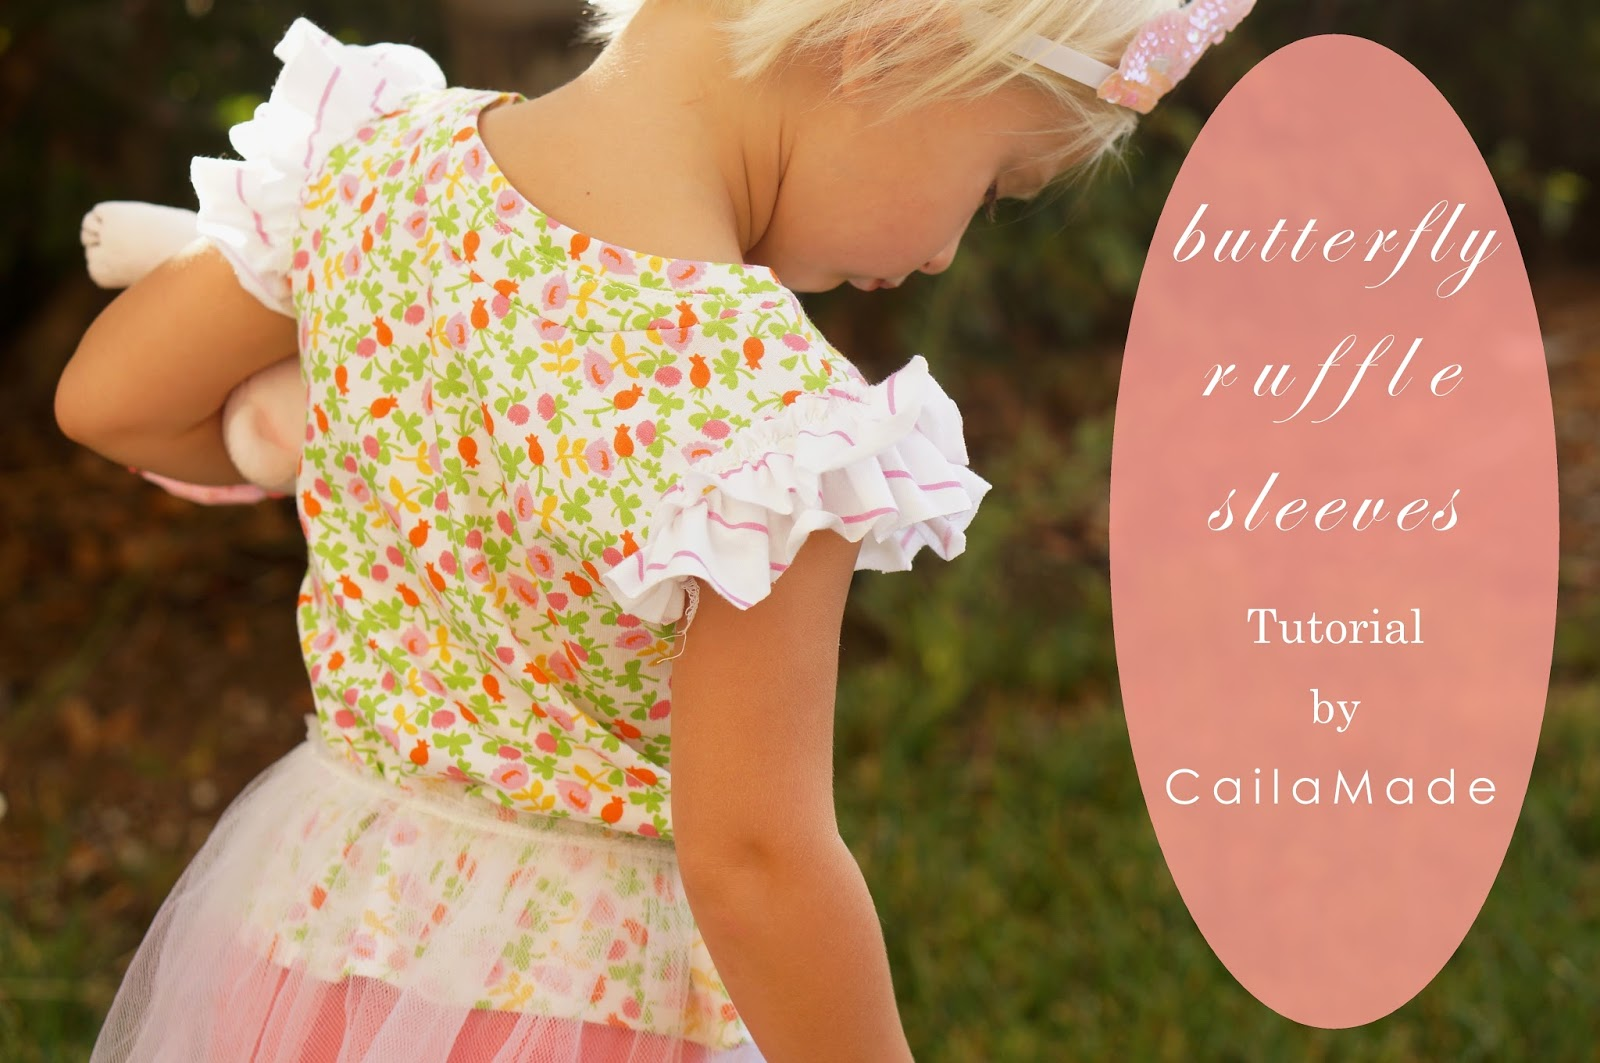 butterfly ruffle sleeve tutorial see kate sew